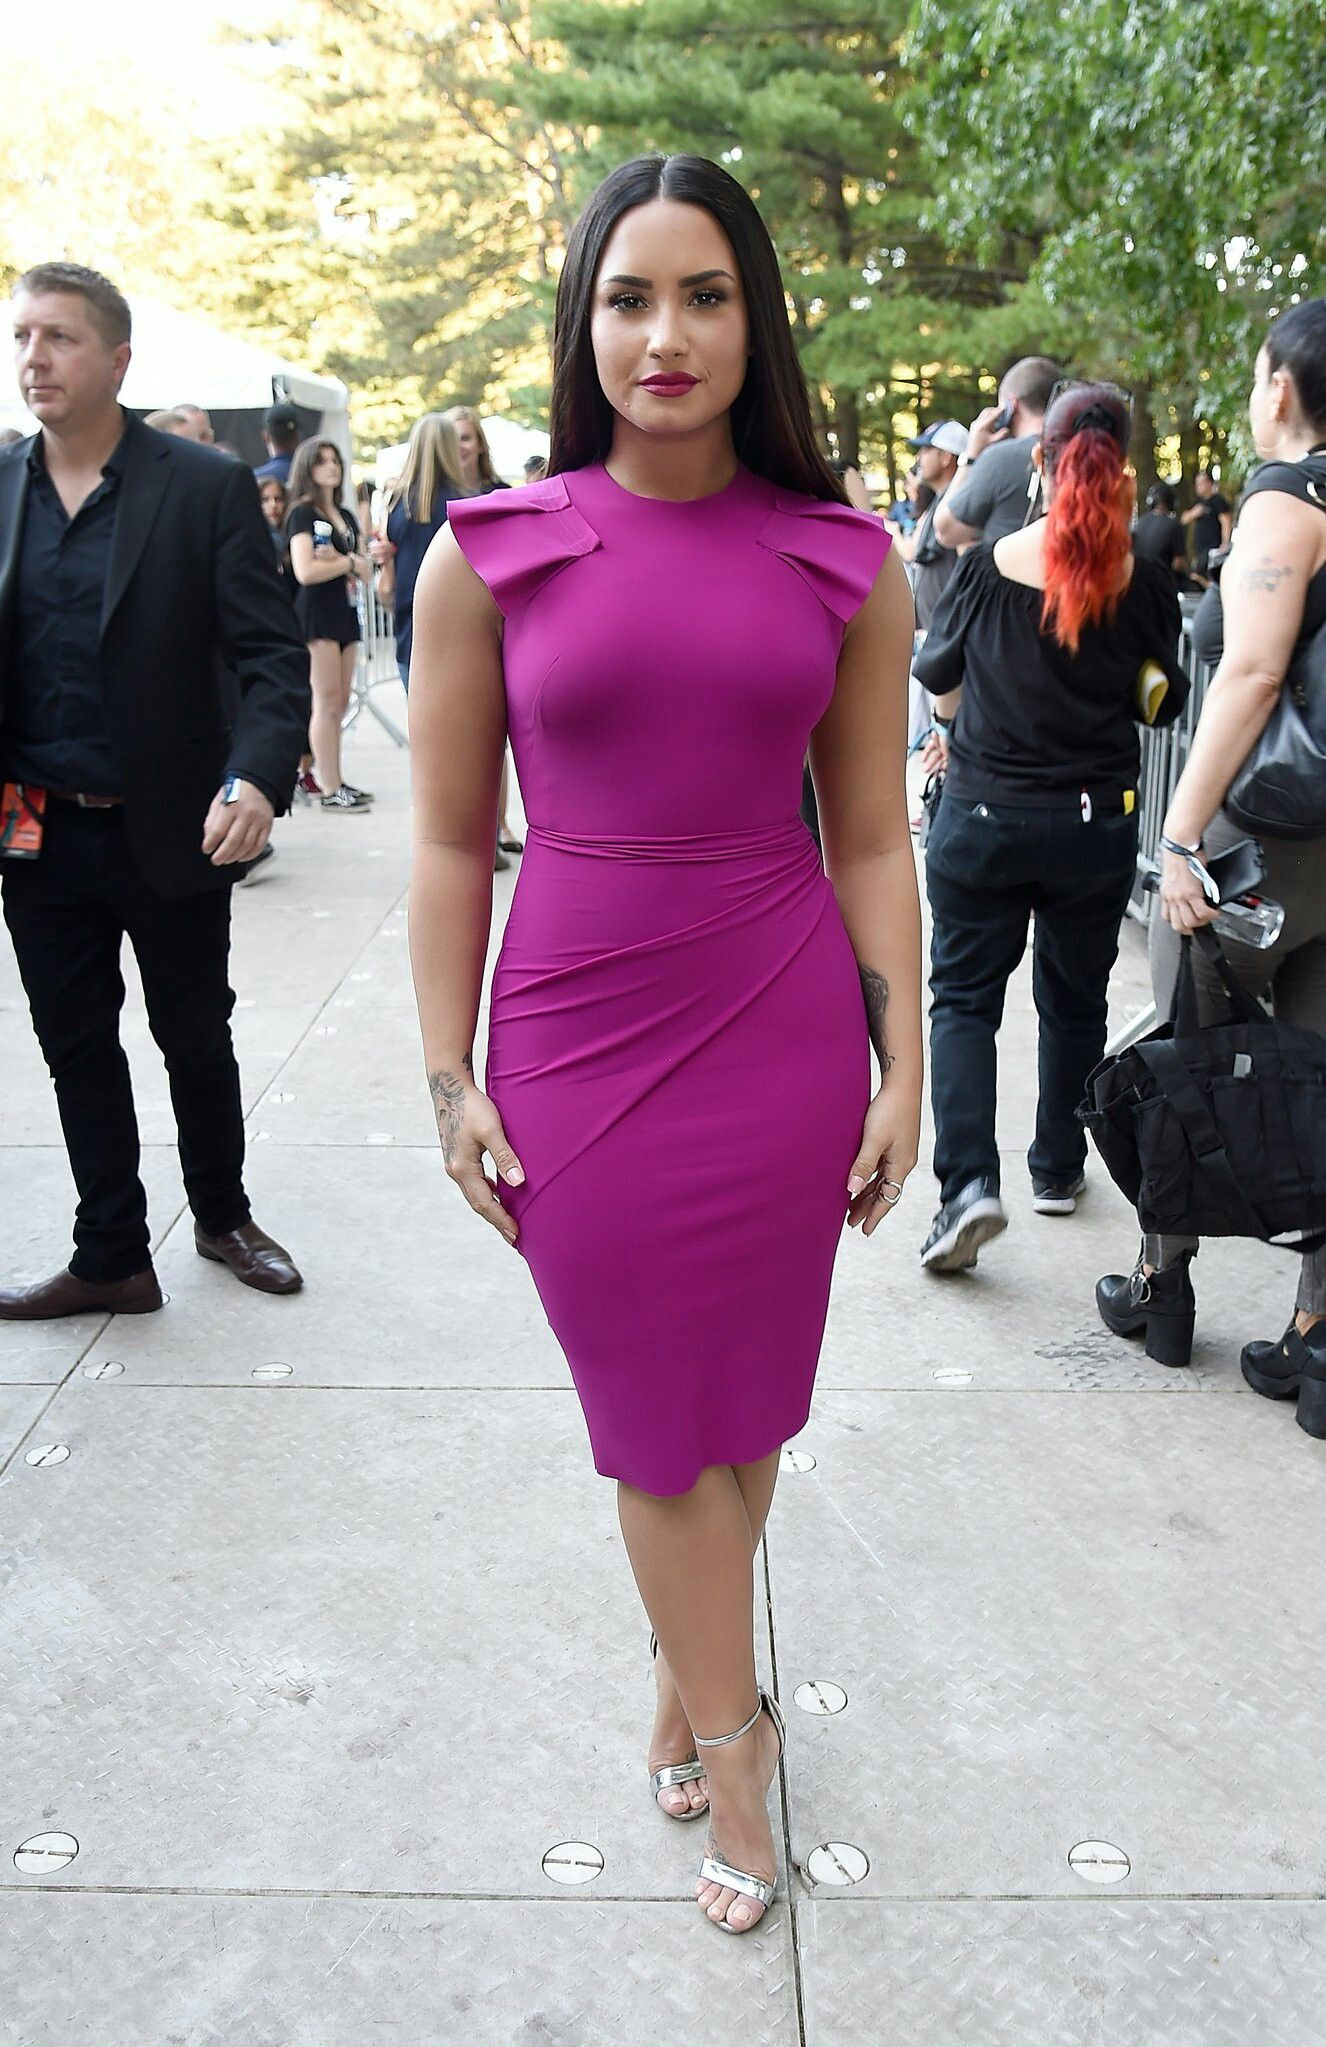 Love the dress and the color is amazing | Demi lovato:) | Pinterest